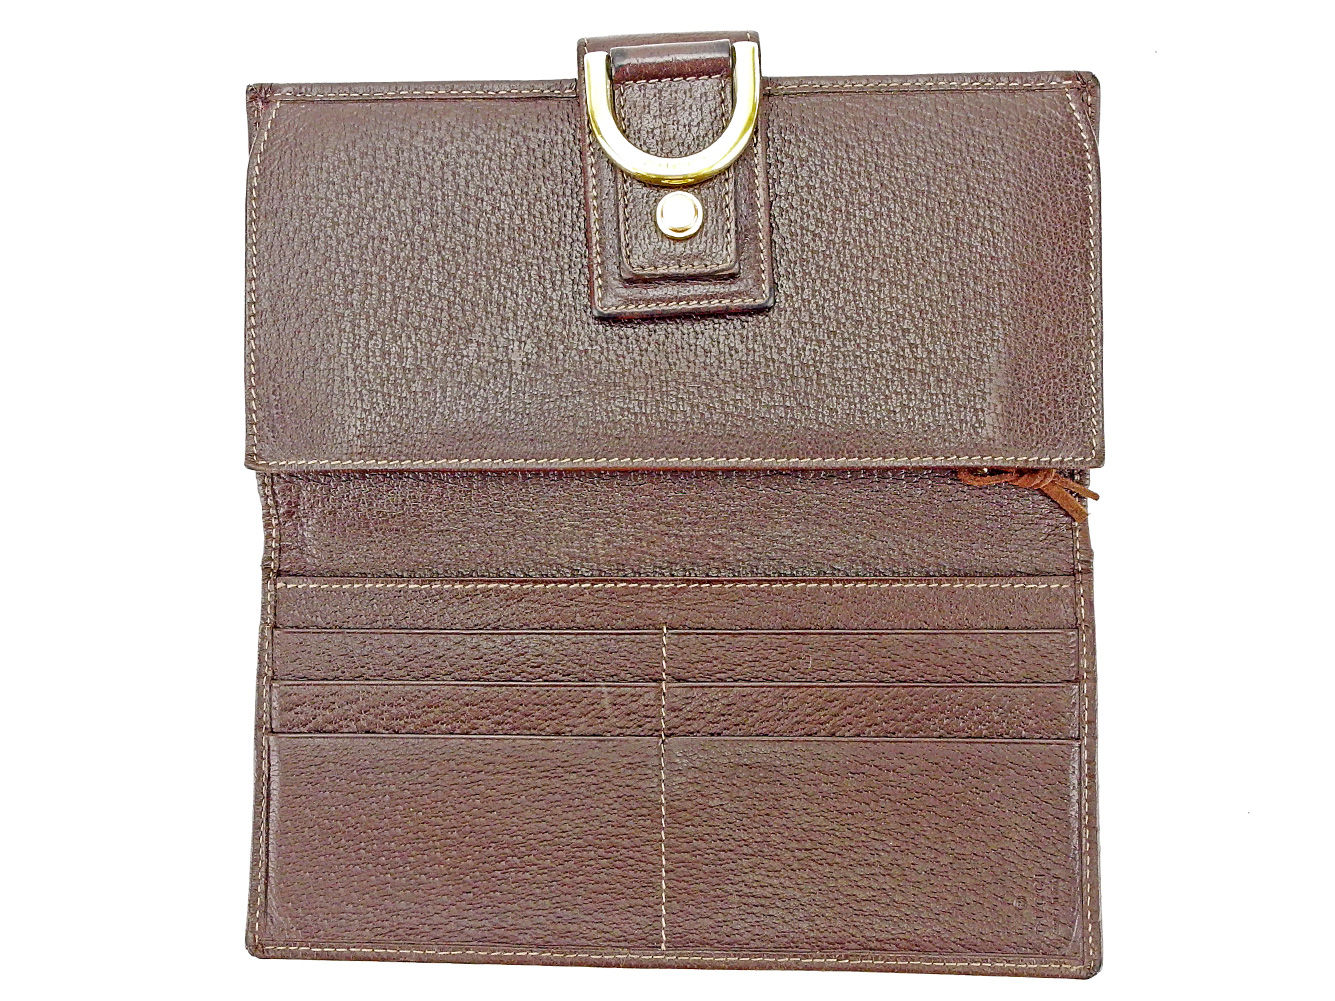 e199db034e0 BRAND DEPOT TOKYO  Wallet Gucci beige X brown X gold S620s with the ...